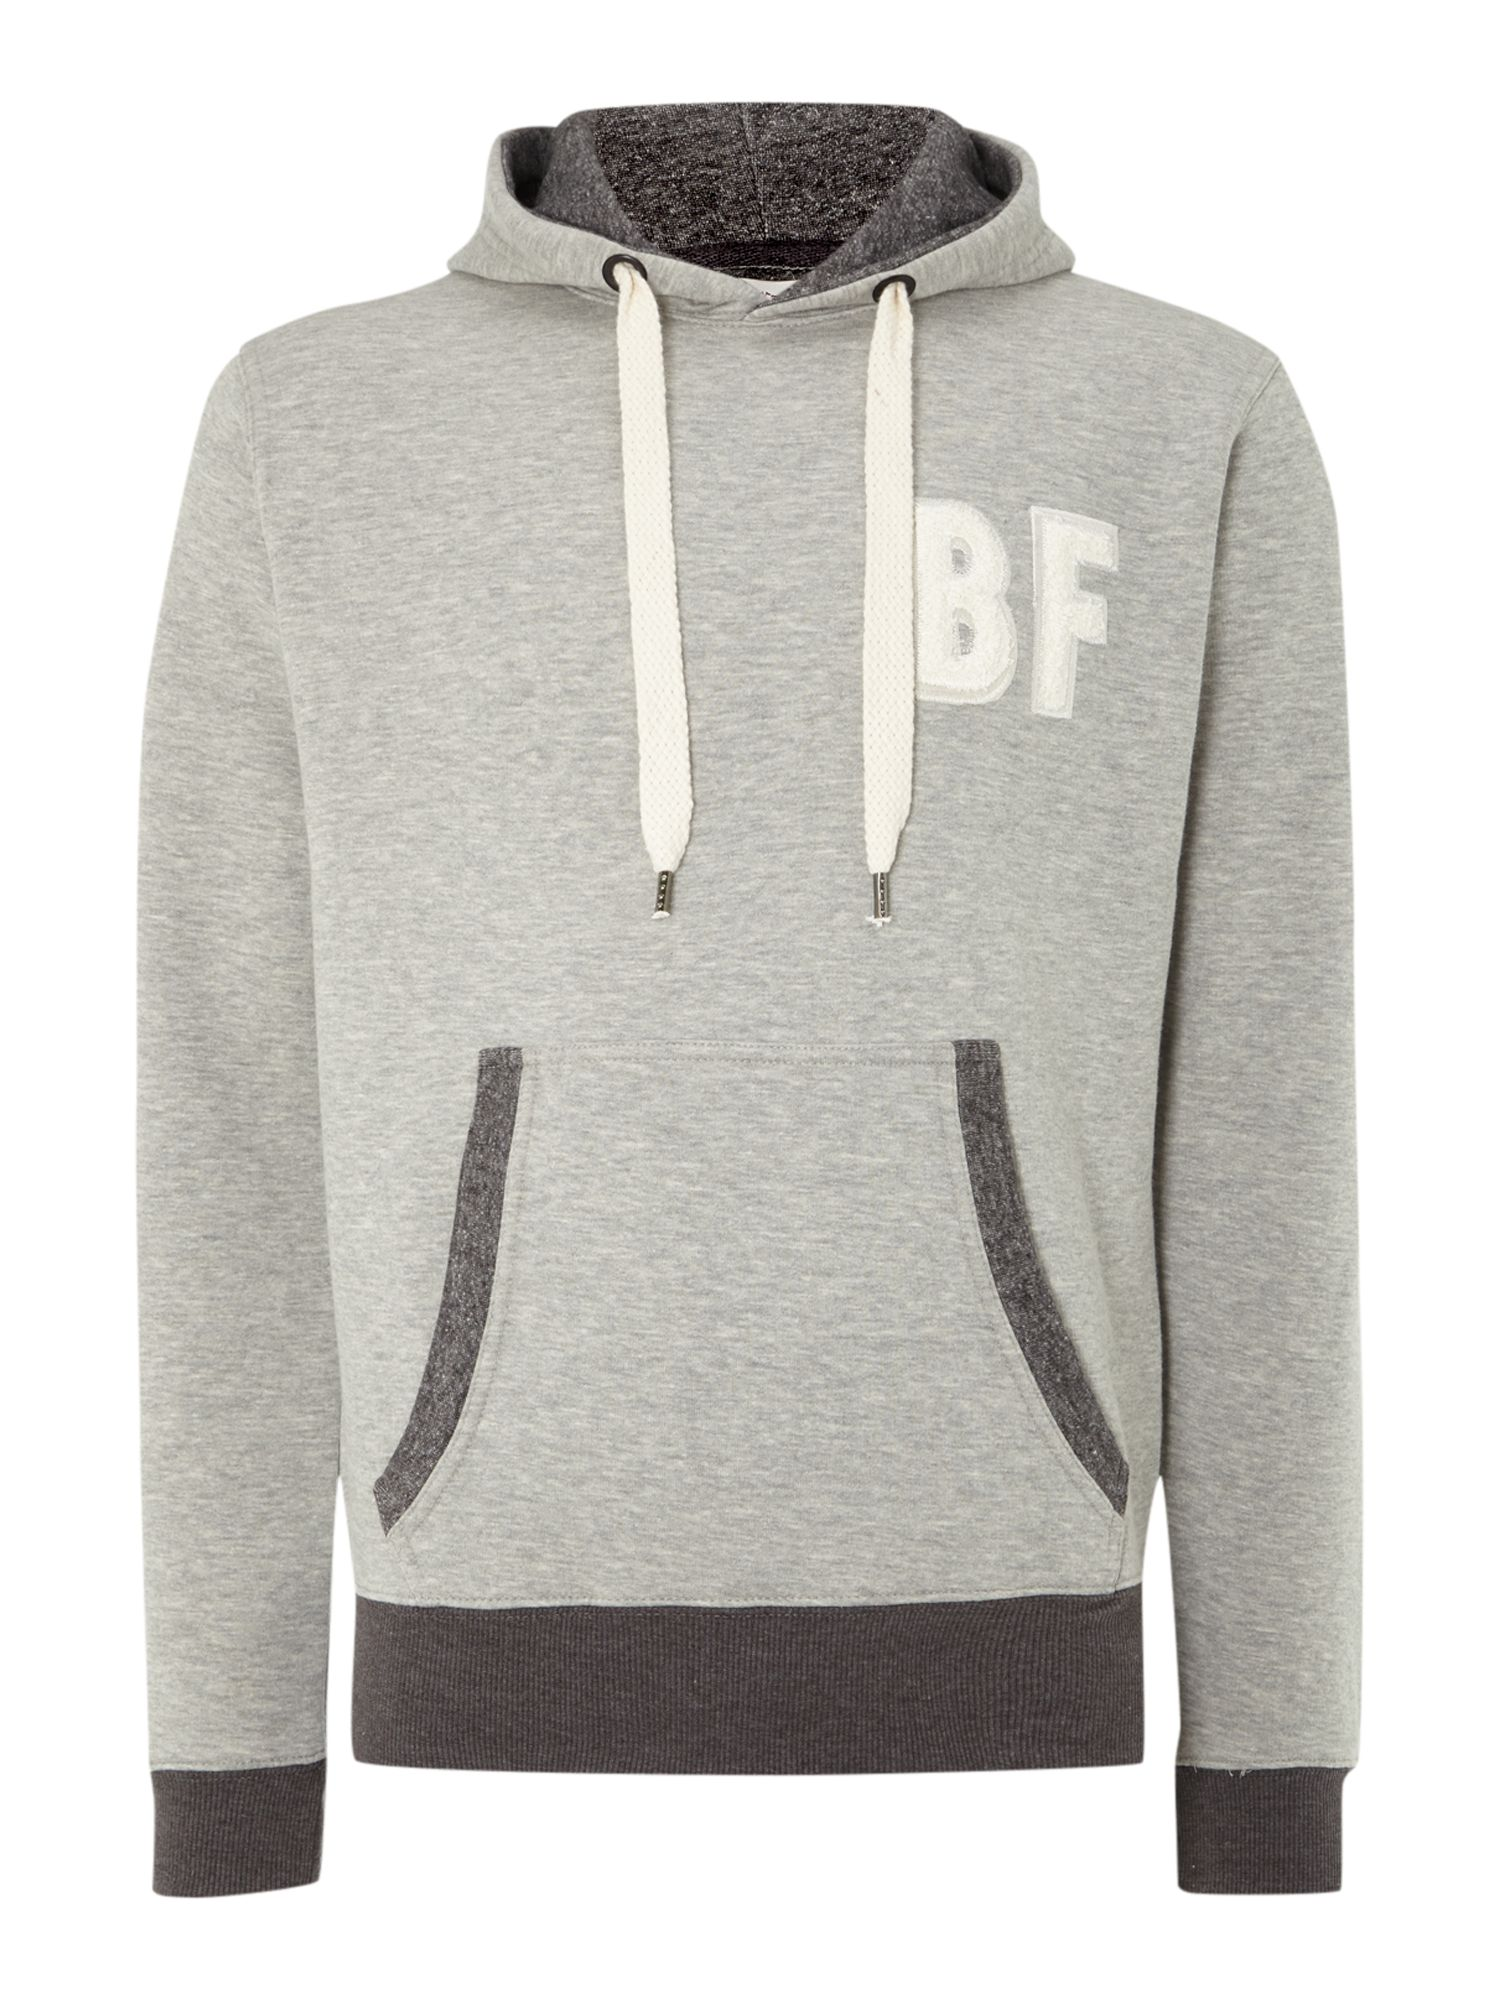 BF hooded sweatshirt